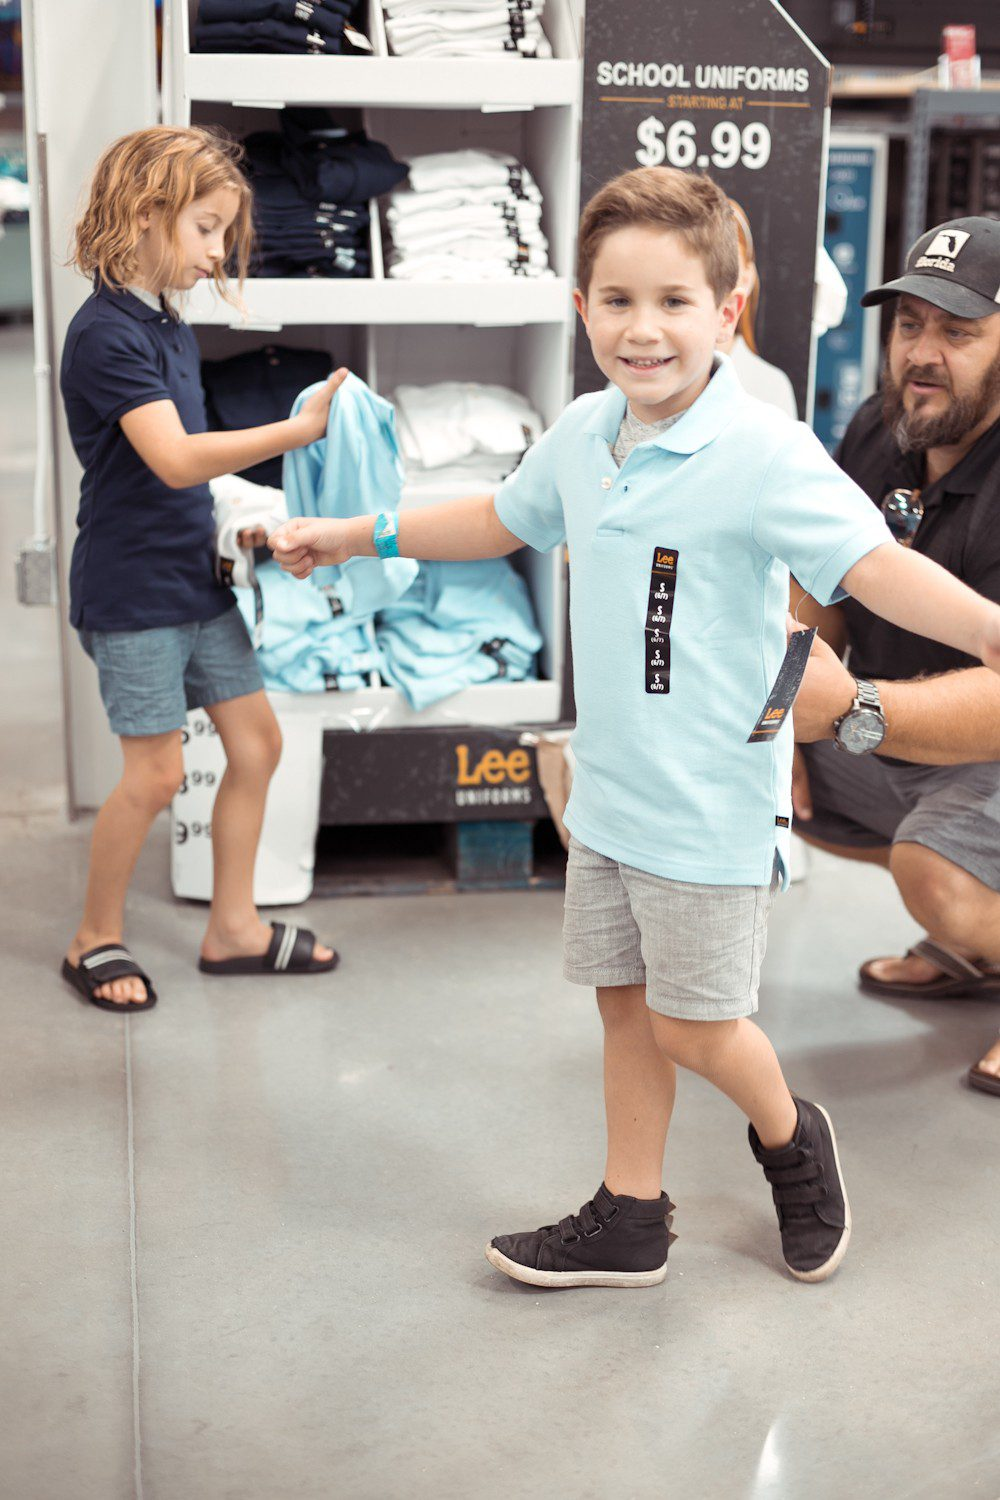 5 Sensational Strategies to Make Getting Ready for School Easy | How to Get Ready for School: 5 Sensational Strategies to Make Easy on your Family by popular Tampa life and style blog, Fresh Mommy: image of a dad helping his two young sons try on a blue Lee polo shirt.